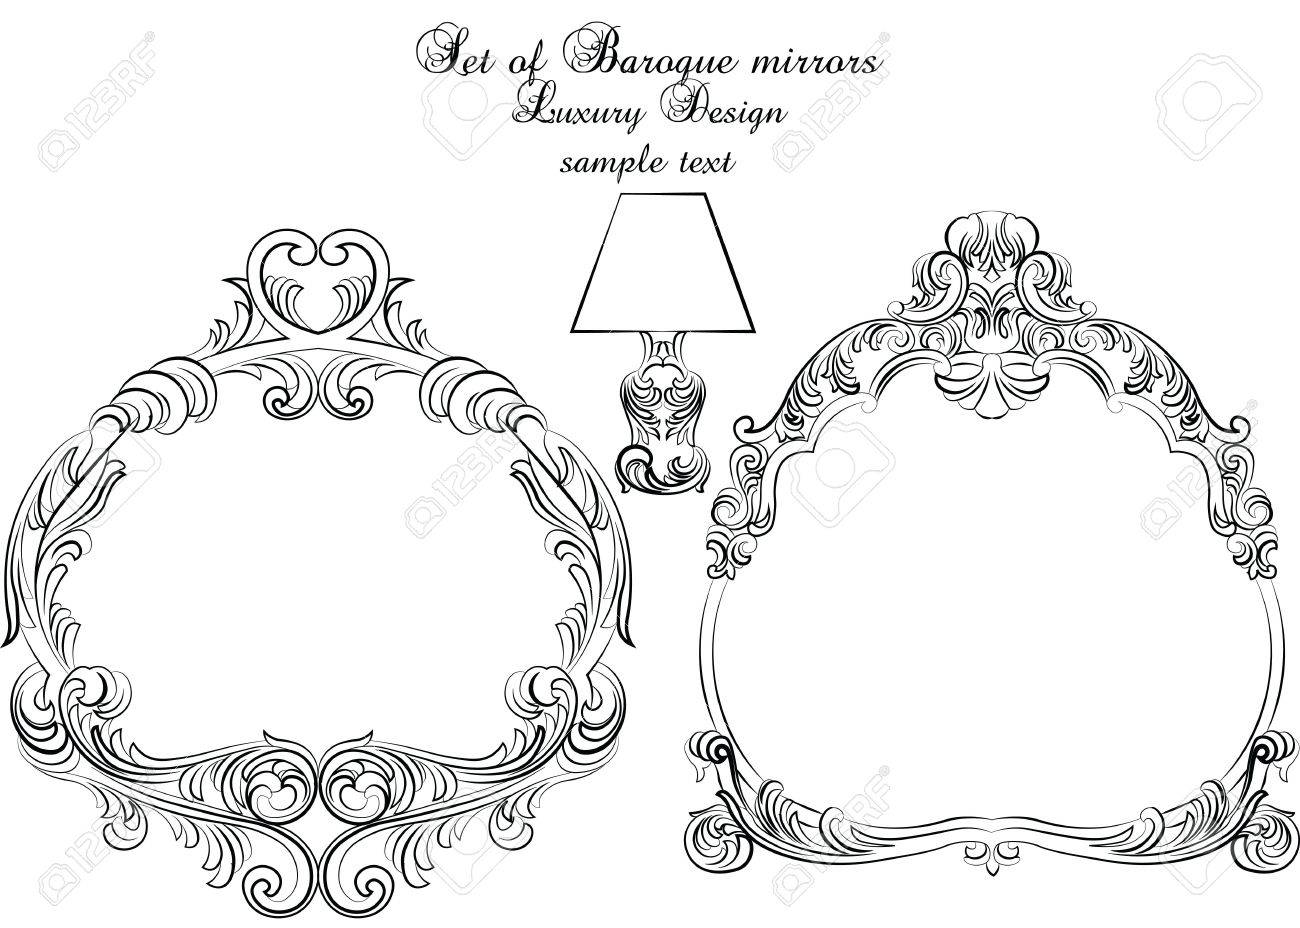 Vintage set of baroque royal vector frames elegant royal frame vintage set of baroque royal vector frames elegant royal frame for mirrors cards stopboris Image collections